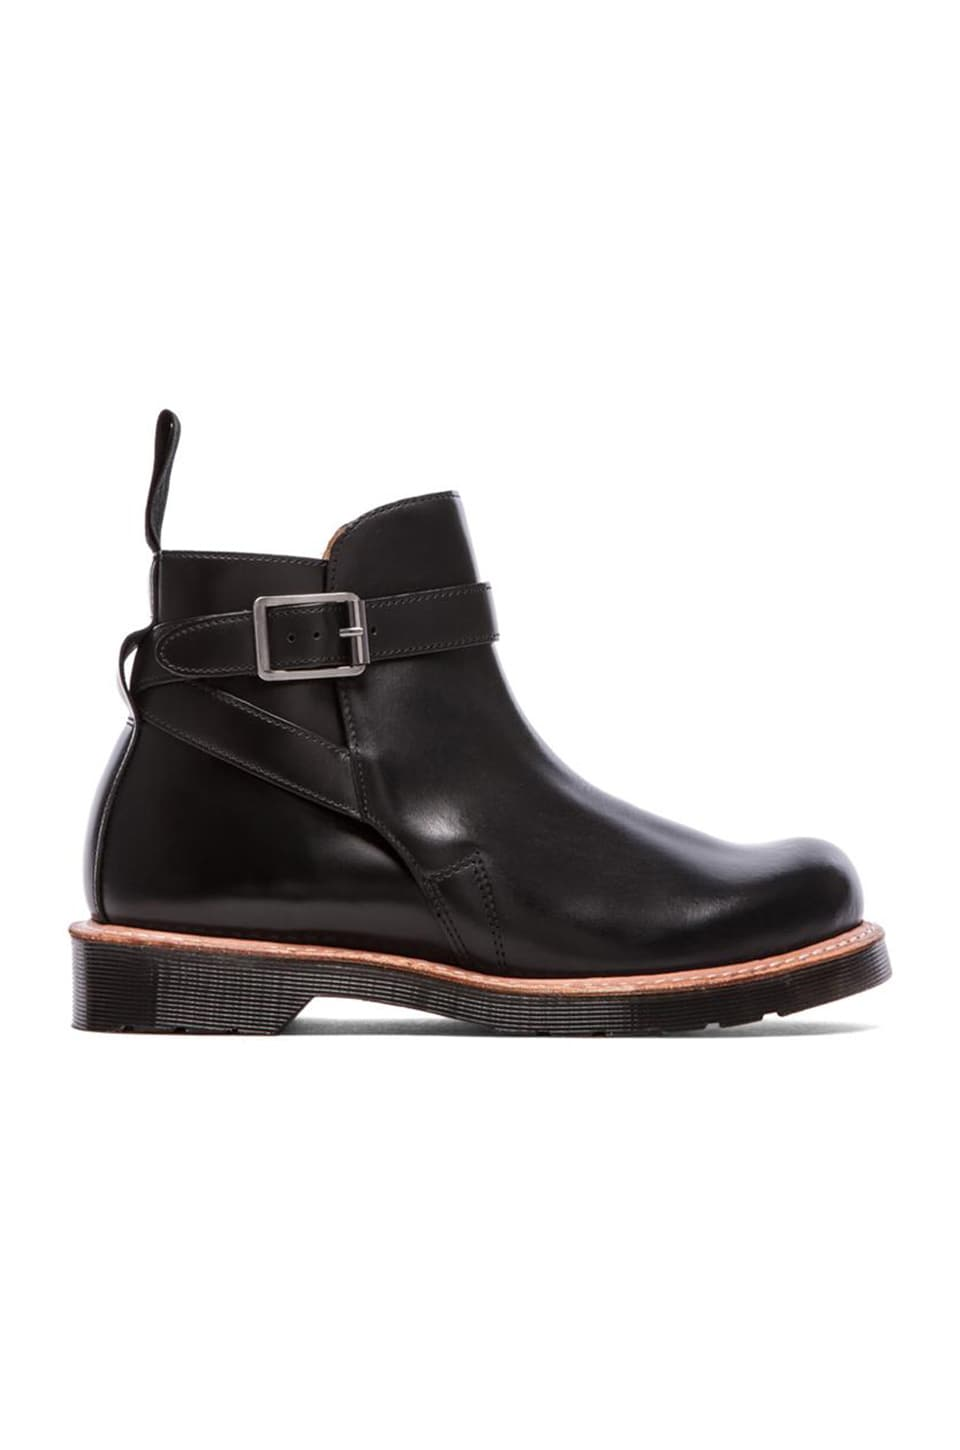 Dr. Martens Kenton Dealer Boot in Black